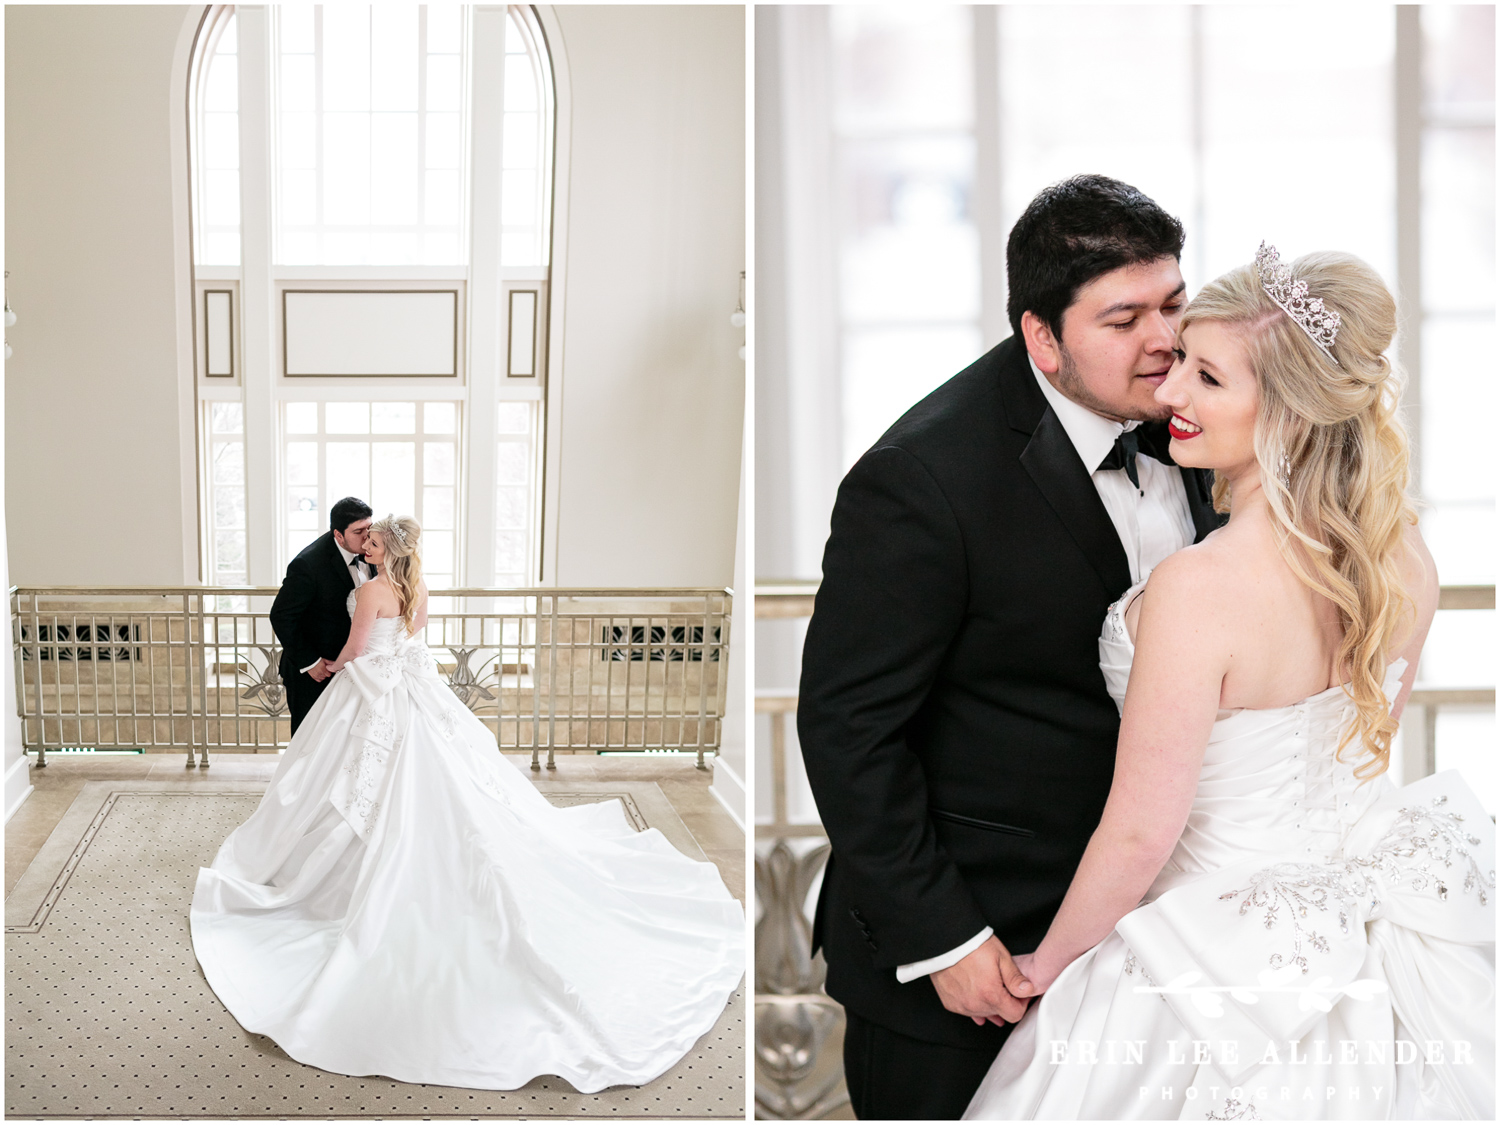 WeddingAngela Proffitt Winter Wedding Schmerhorn Symphony Center in Nashville, Tennessee photographed by Erin Lee Allender._Dress_With_Bow